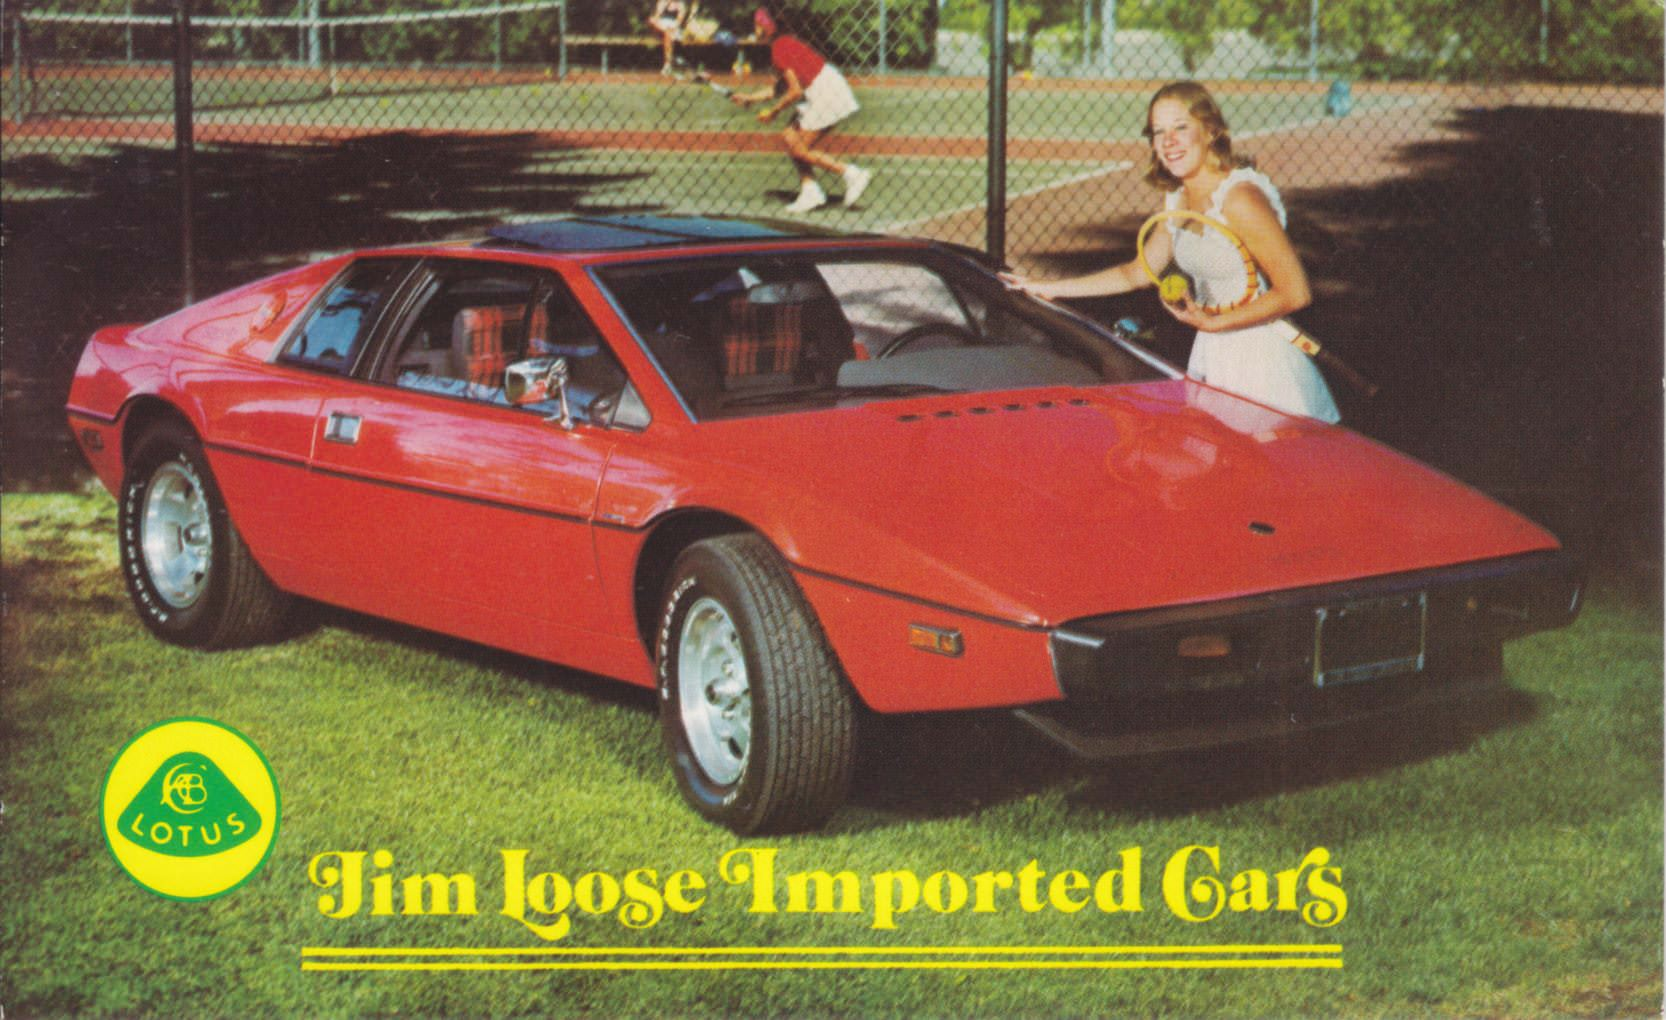 A Brief History of the Lotus Esprit - Everything You Need To Know